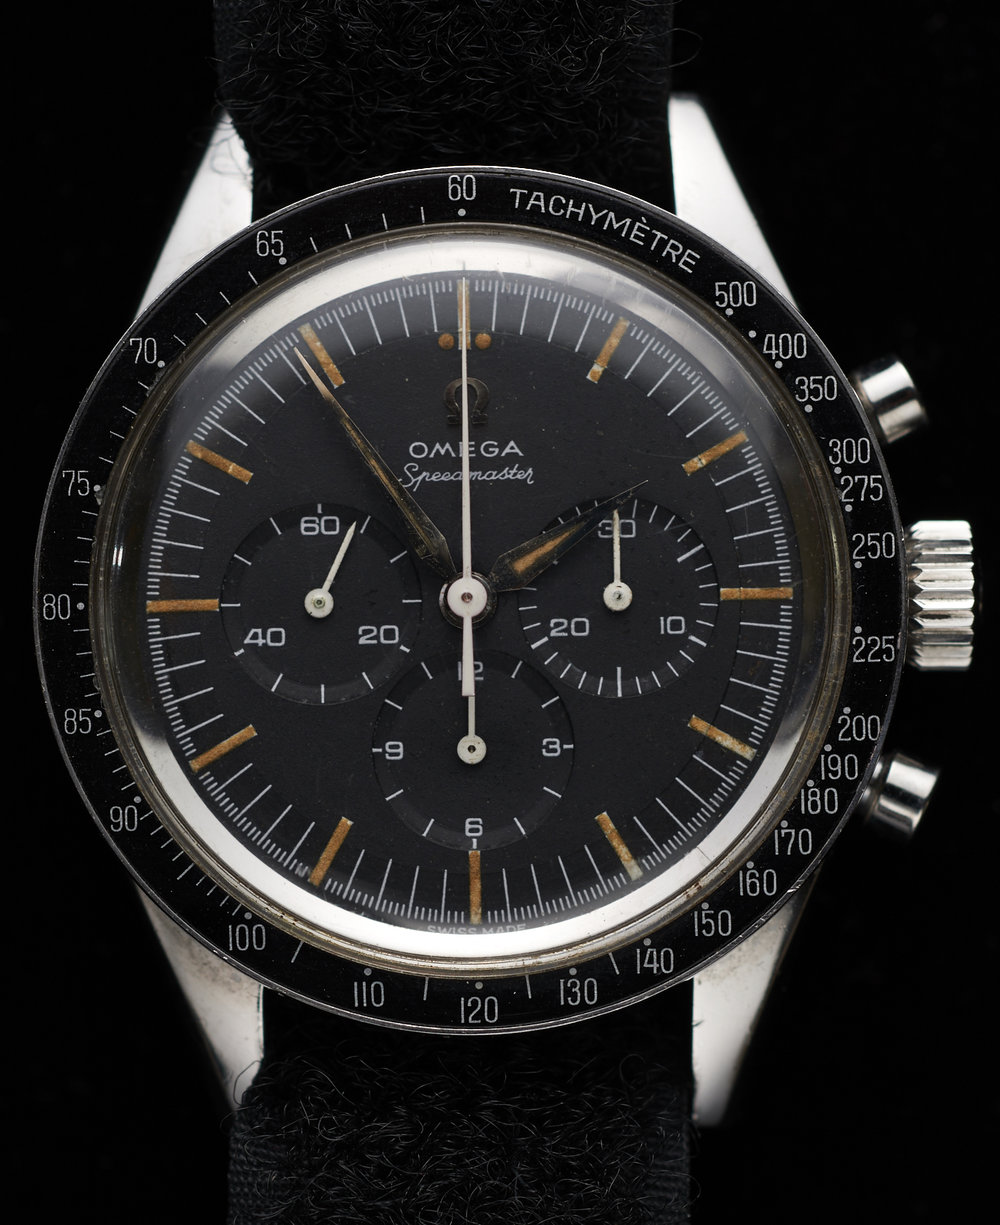 wally Shirra's Omega Speedmaster he wore to the moon